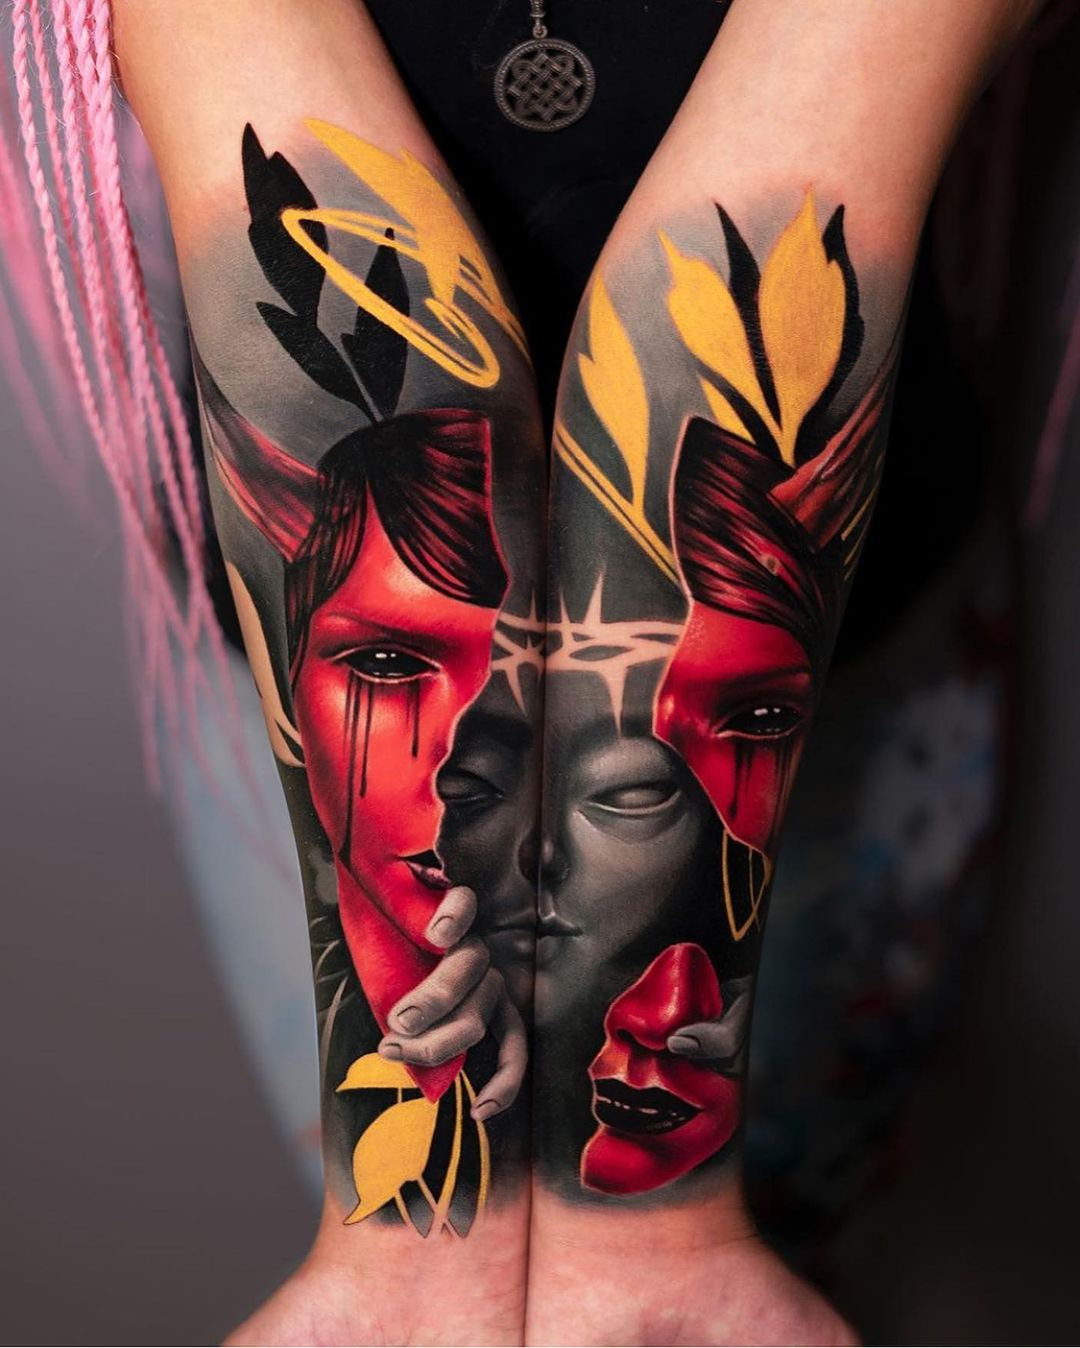 Colored sleeve in a very interesting style, consisting of two parts on different arms